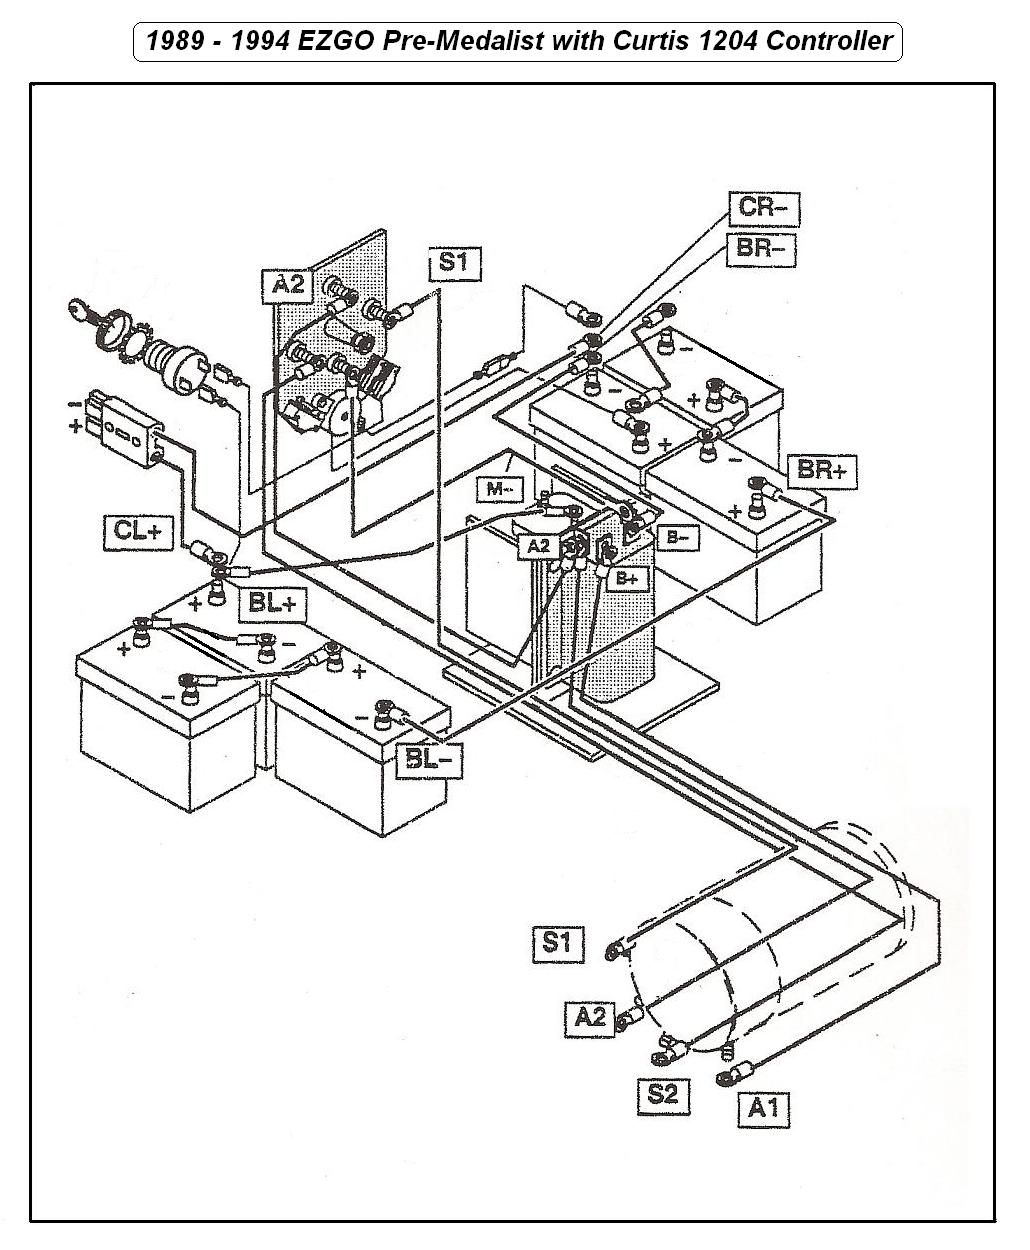 42 Volt Ez Go Cart Wiring Diagram Automotive Battery 2000 Ezgo Gas Diagrams Todays Rh 8 12 1813weddingbarn Com 1989